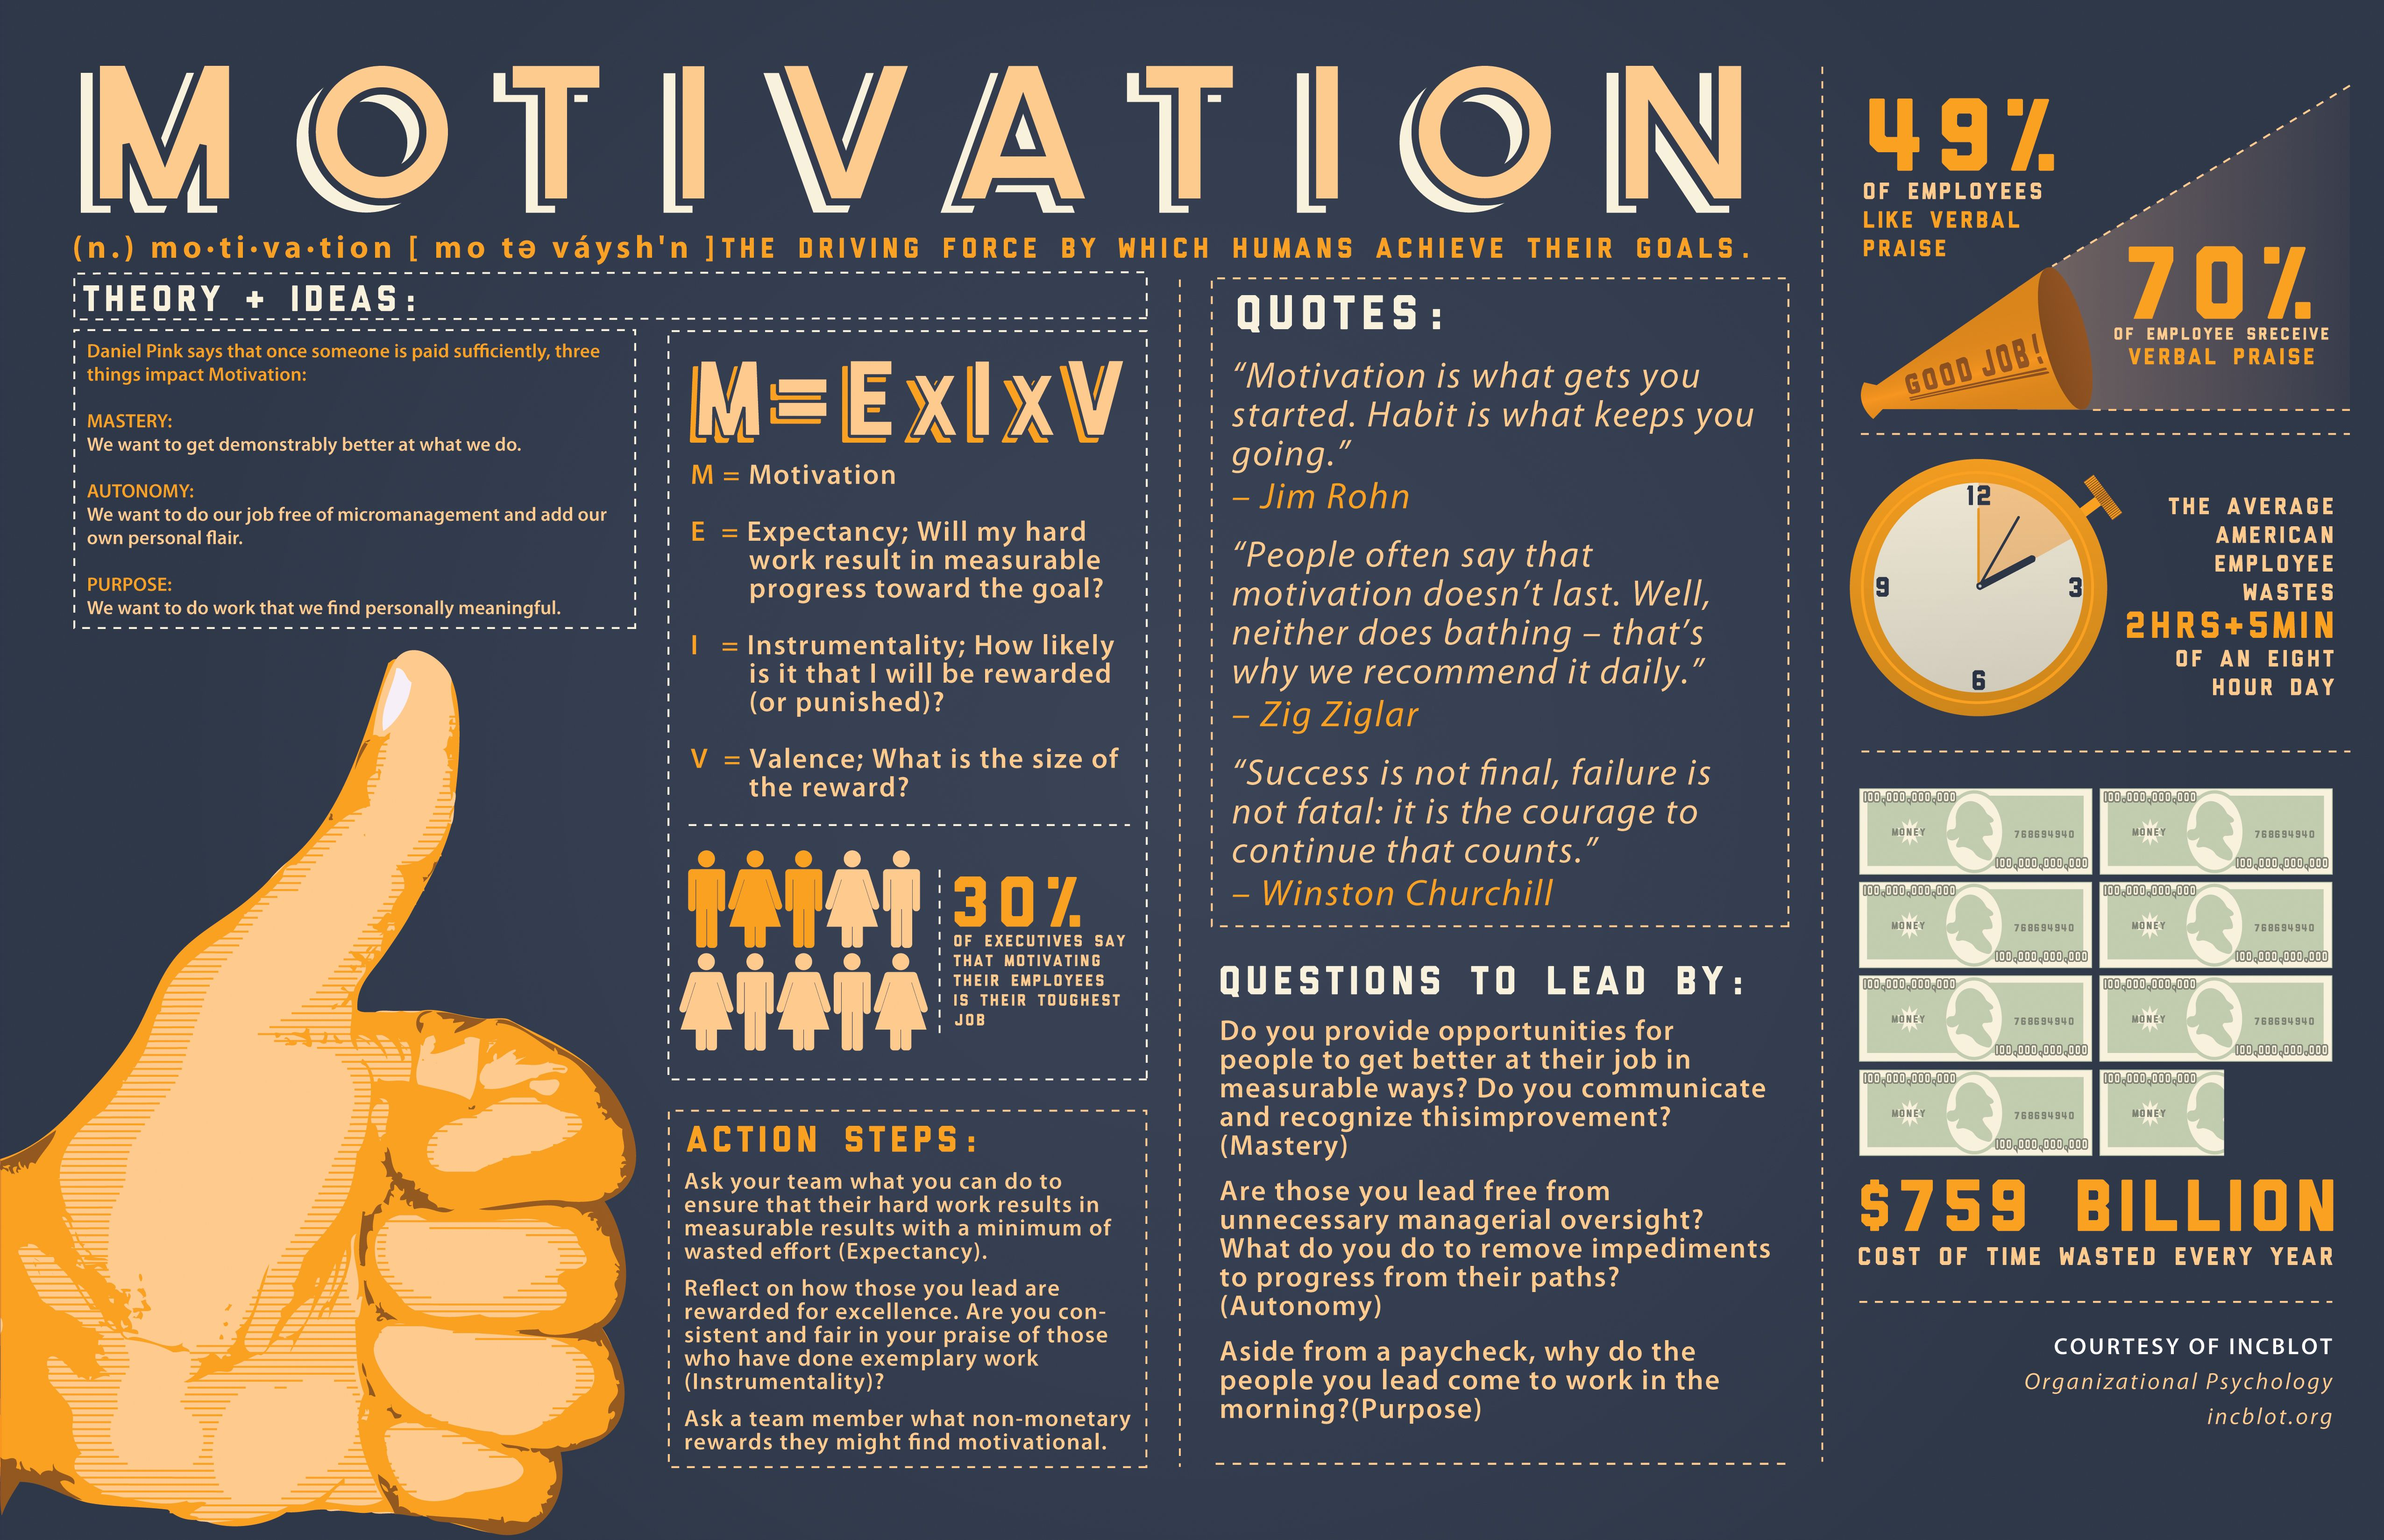 Motivation The Driving Force In Which Humans Achieve